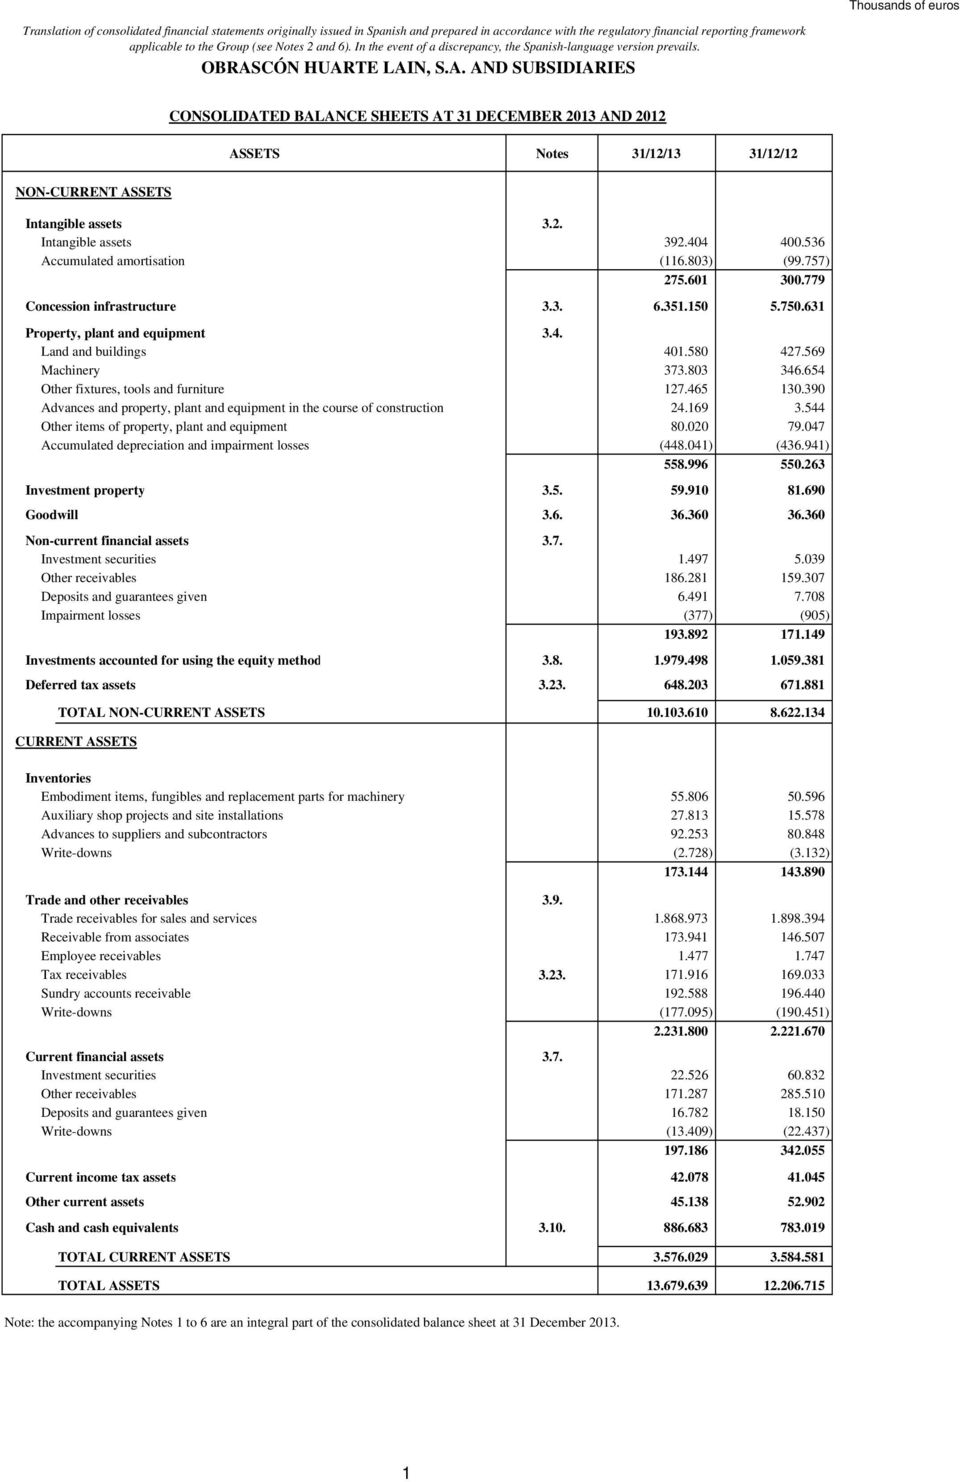 CÓN HUARTE LAIN, S.A. AND SUBSIDIARIES CONSOLIDATED BALANCE SHEETS AT 31 DECEMBER 2013 AND 2012 ASSETS Notes 31/12/13 31/12/12 NON-CURRENT ASSETS Intangible assets 3.2. Intangible assets 392.404 400.